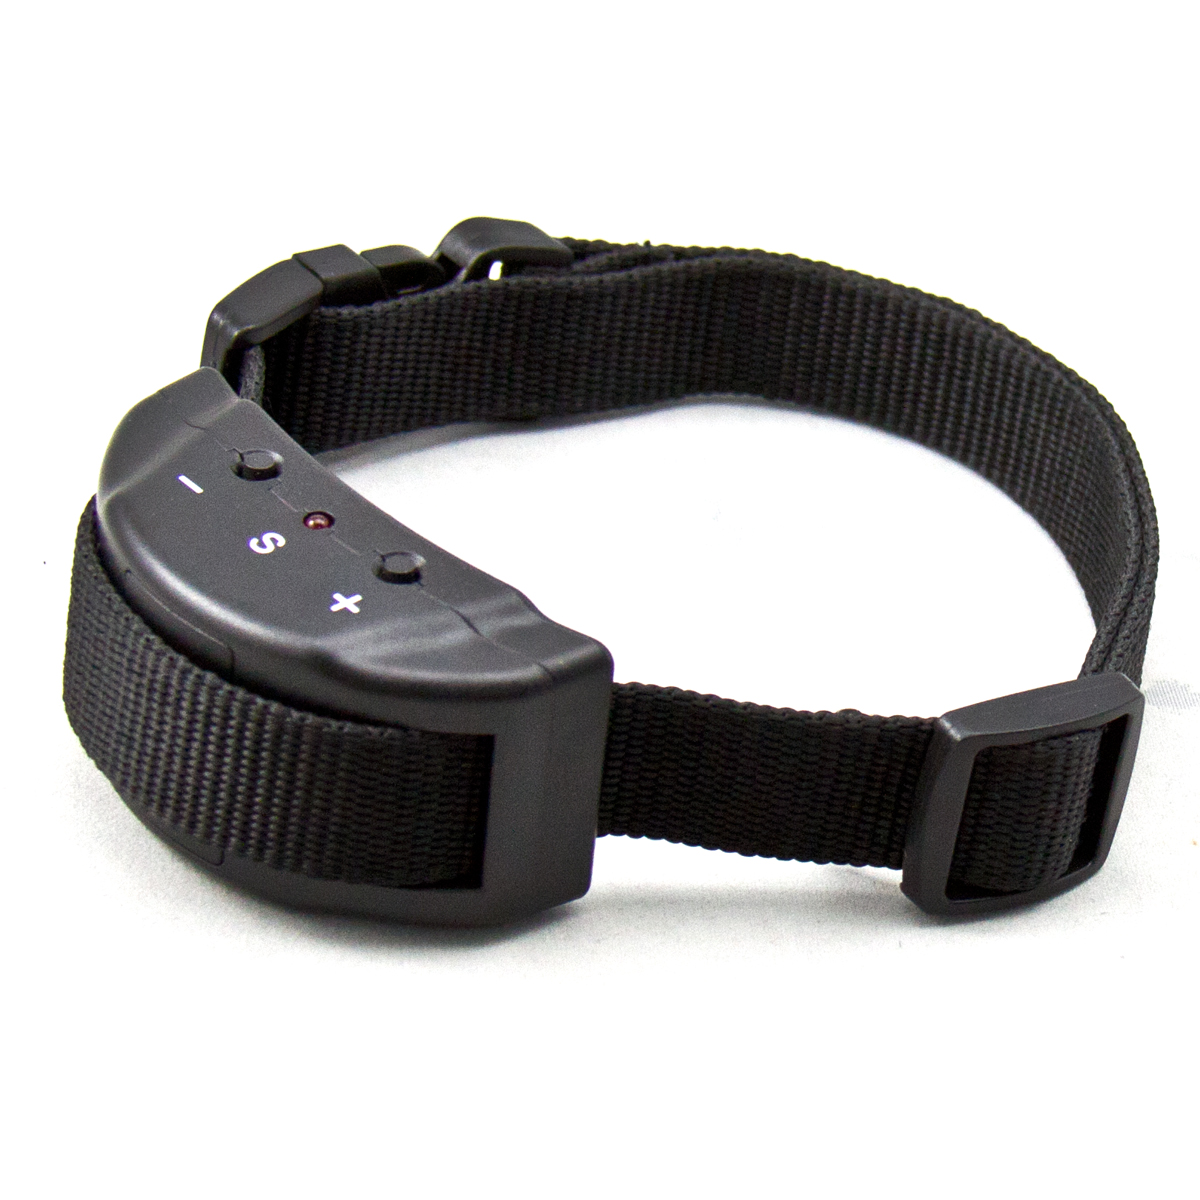 Humane Anti Bark Shock Collar Training System Ideal for Small, Medium, & Large Dogs